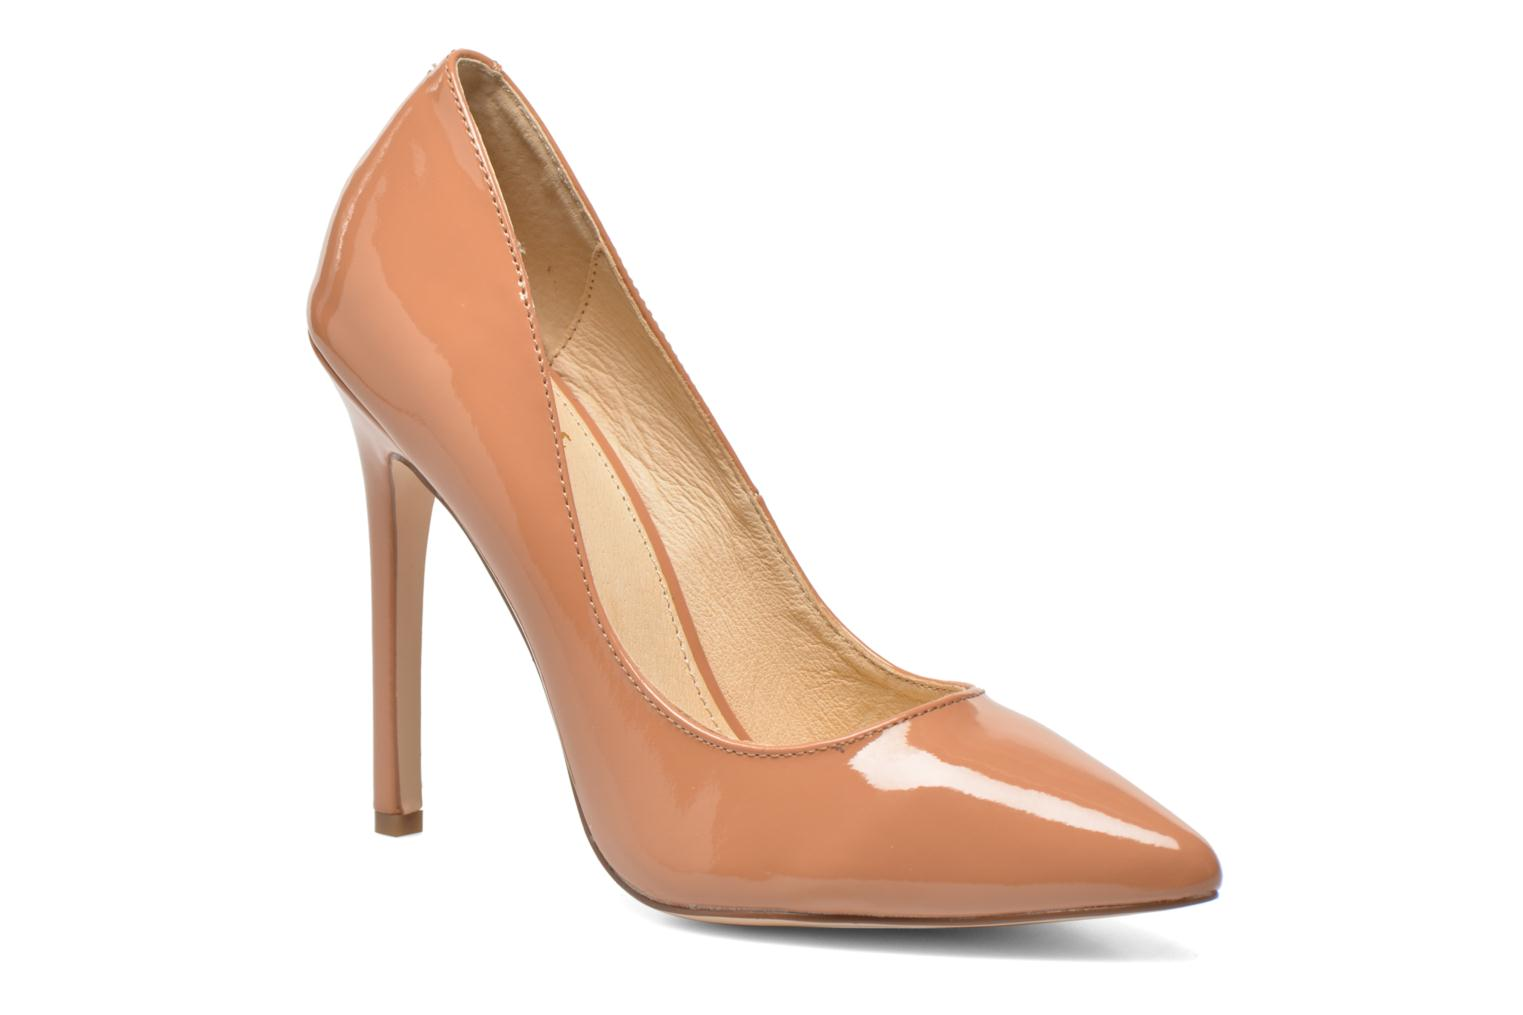 Marques Chaussure femme La Strada femme Janie Patent nude